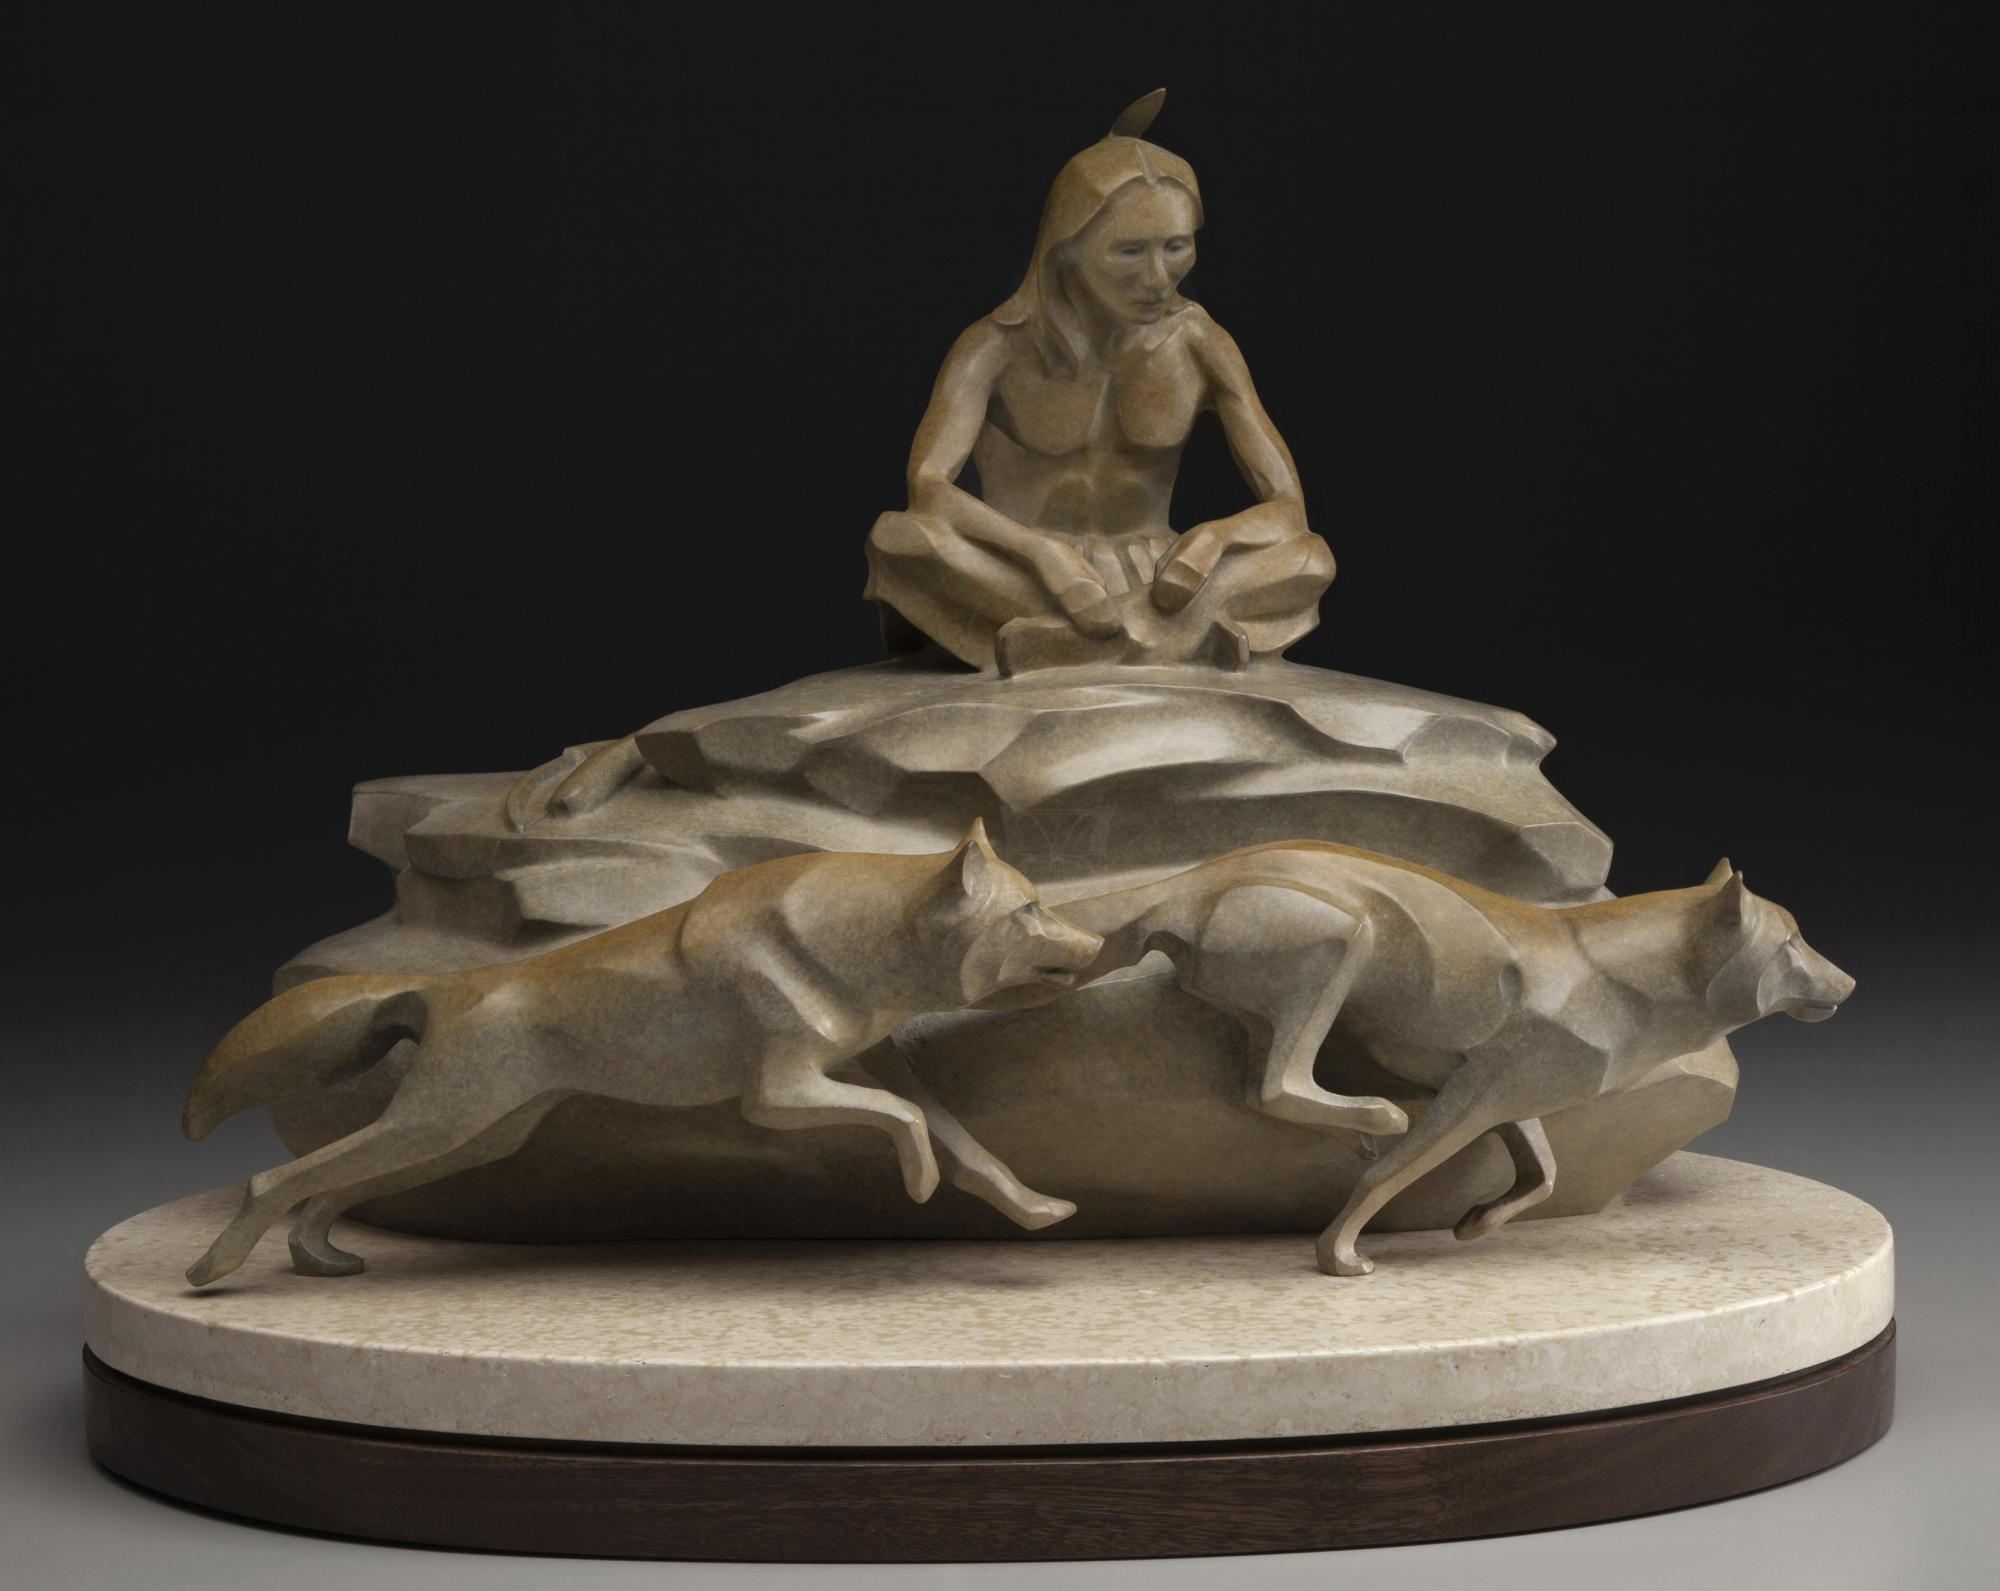 Spirit Brothers   Sculpture by Rosetta   Artists for Conservation 2021